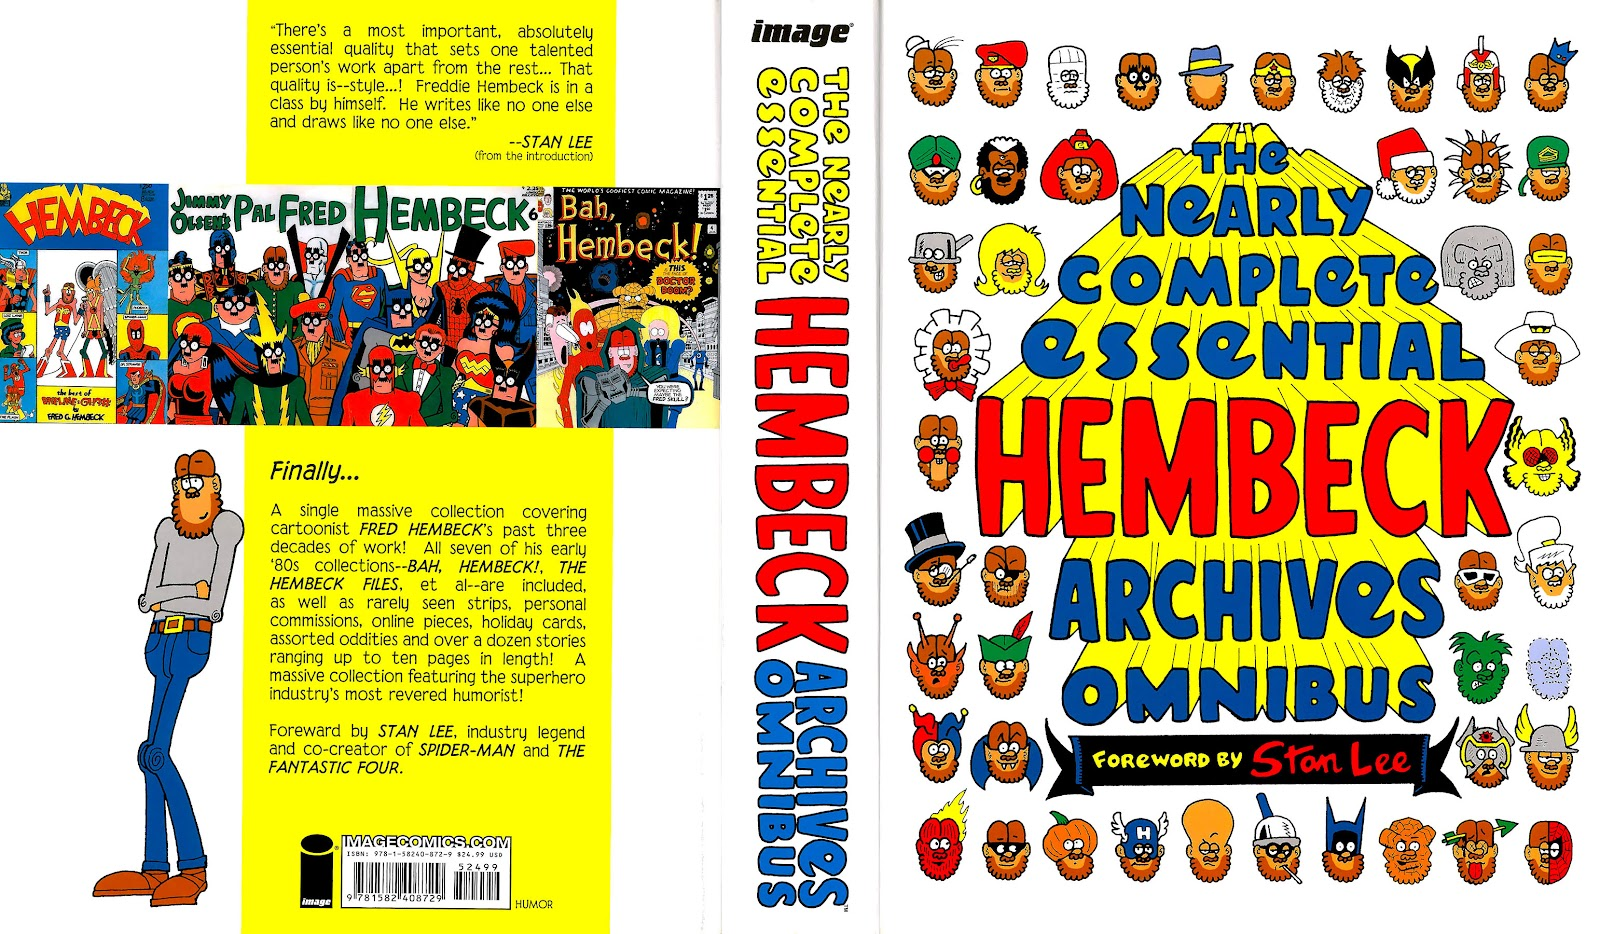 Read online The Nearly Complete Essential Hembeck Archives Omnibus comic -  Issue # TPB (Part 1) - 2